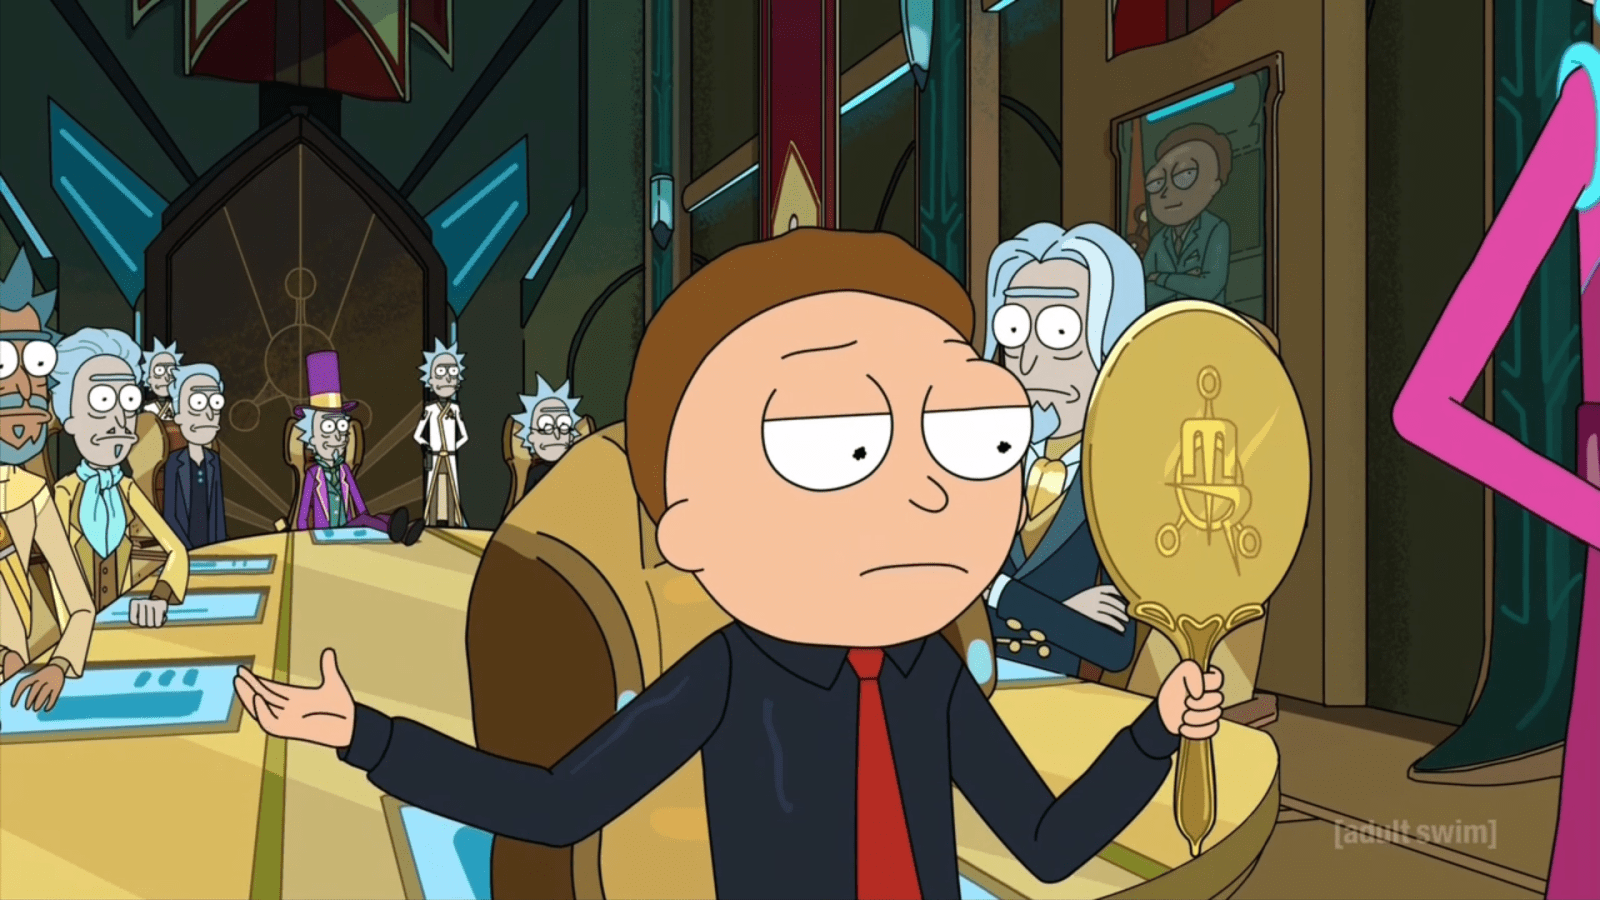 epsode guide to rick and morty season 3